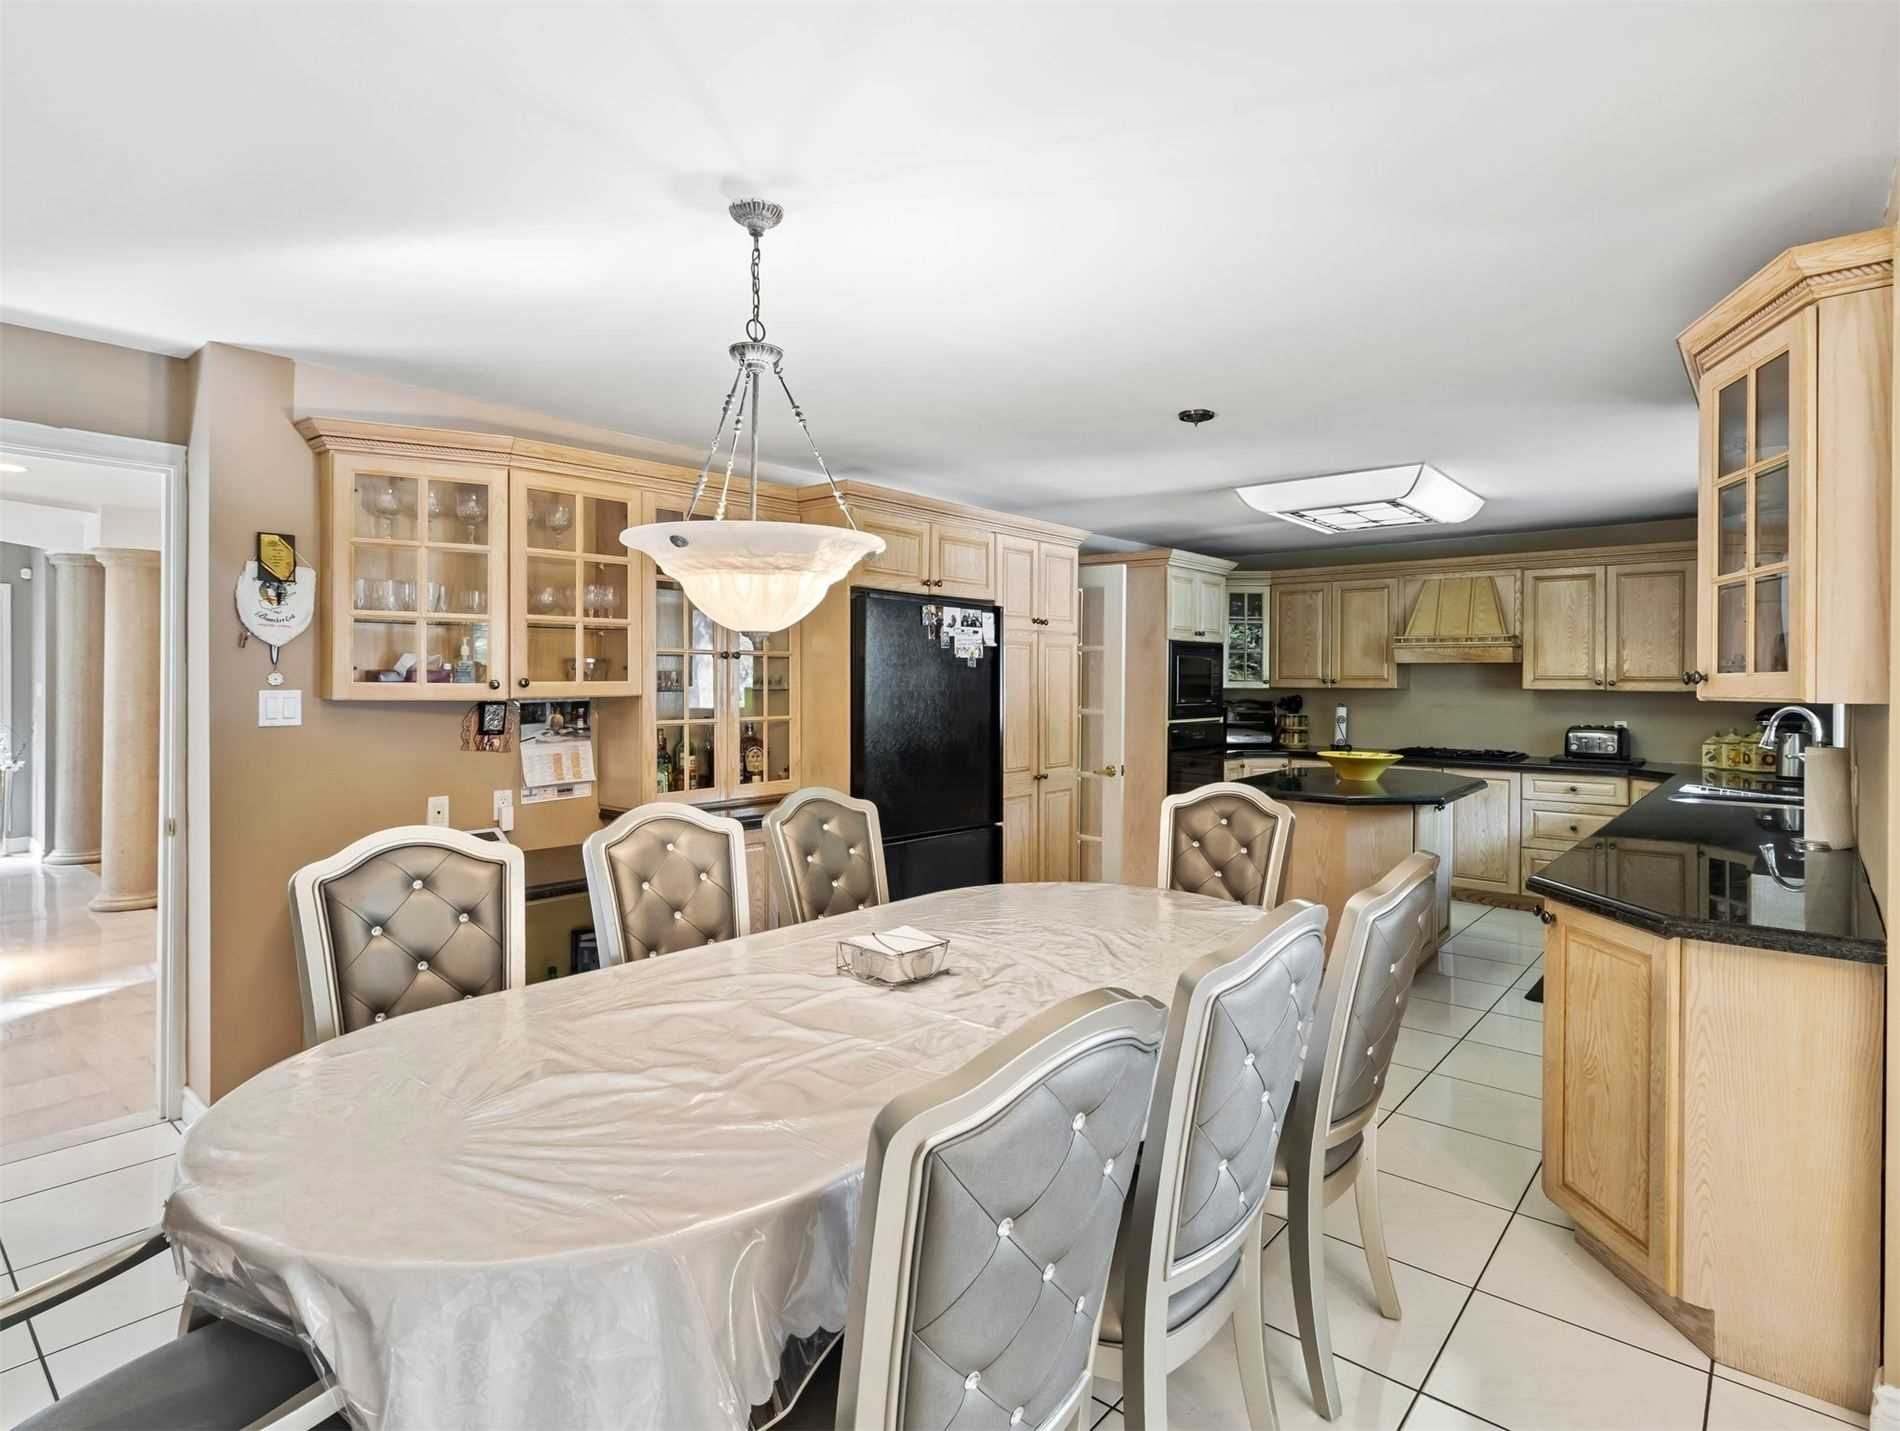 Detached house For Sale In Aurora - 34 Hunters Glen Rd, Aurora, Ontario, Canada L4G 6W4 , 6 Bedrooms Bedrooms, ,5 BathroomsBathrooms,Detached,For Sale,Hunters Glen